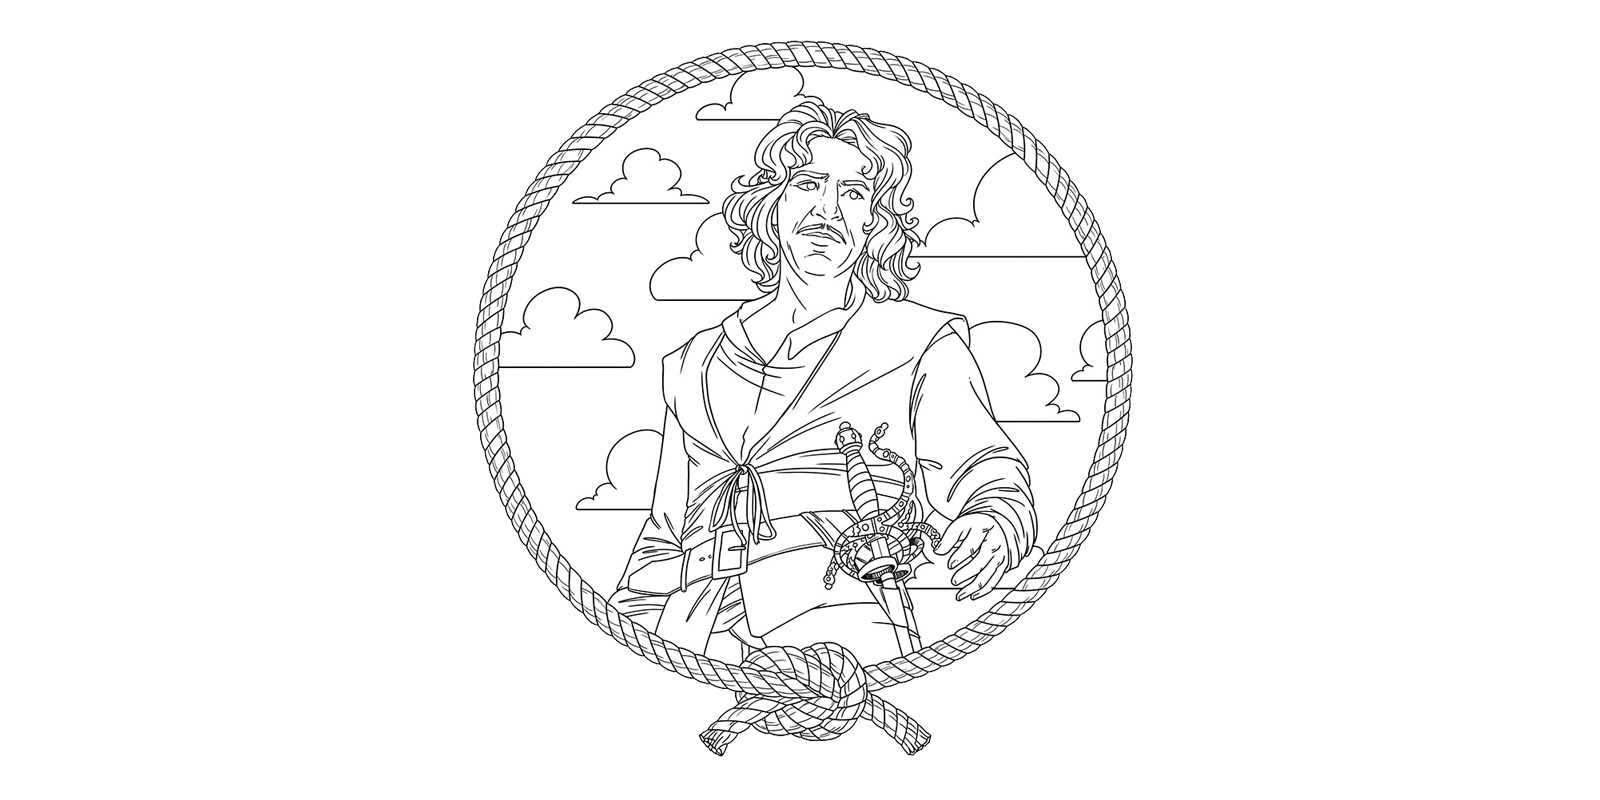 The Princess Bride's 2nd Coloring Book Pages